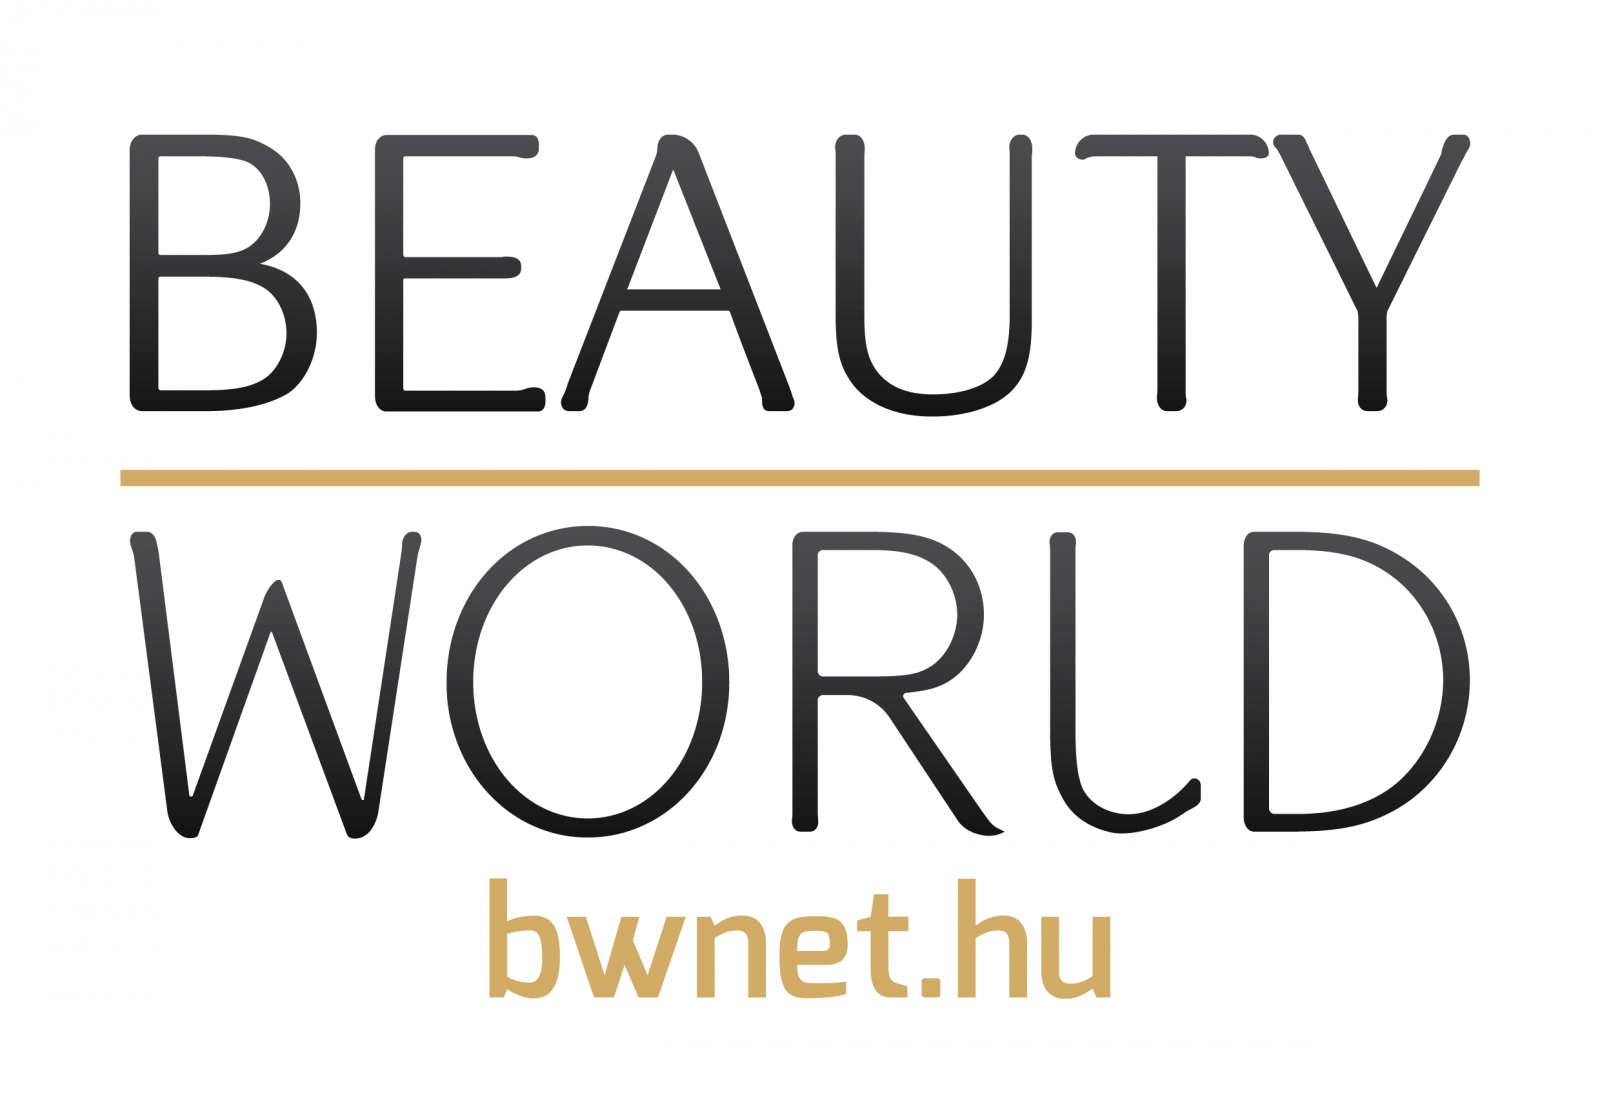 new school barber képzés debrecen, beauty world, bwnet.hu, szalonmenedzser